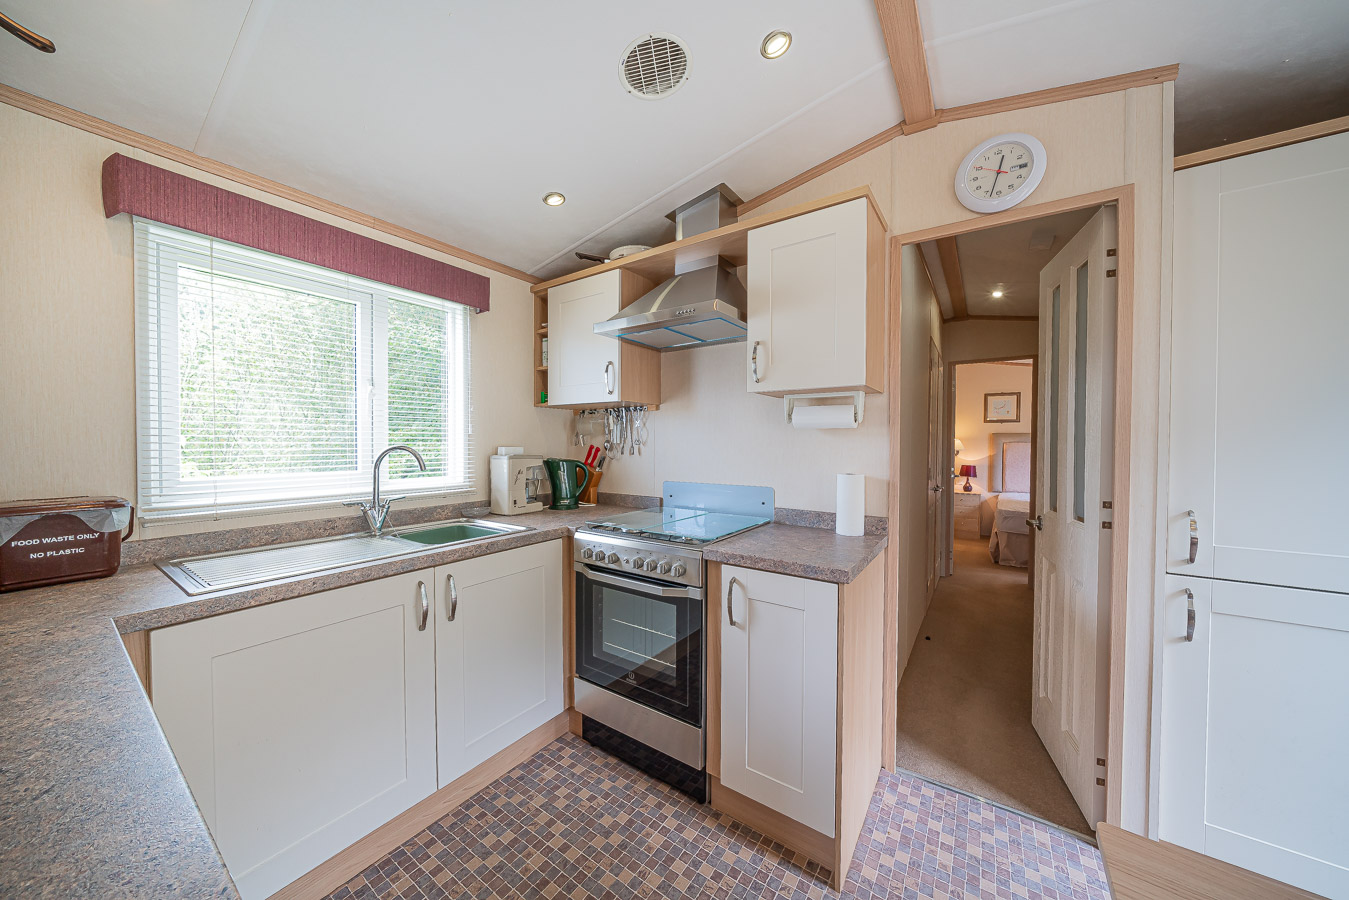 Monkton-Wyld-Static-Mobile-Holiday-Home-Sale-Plot-8-Charmouth-Lyme-Regis-West-Dorset-4